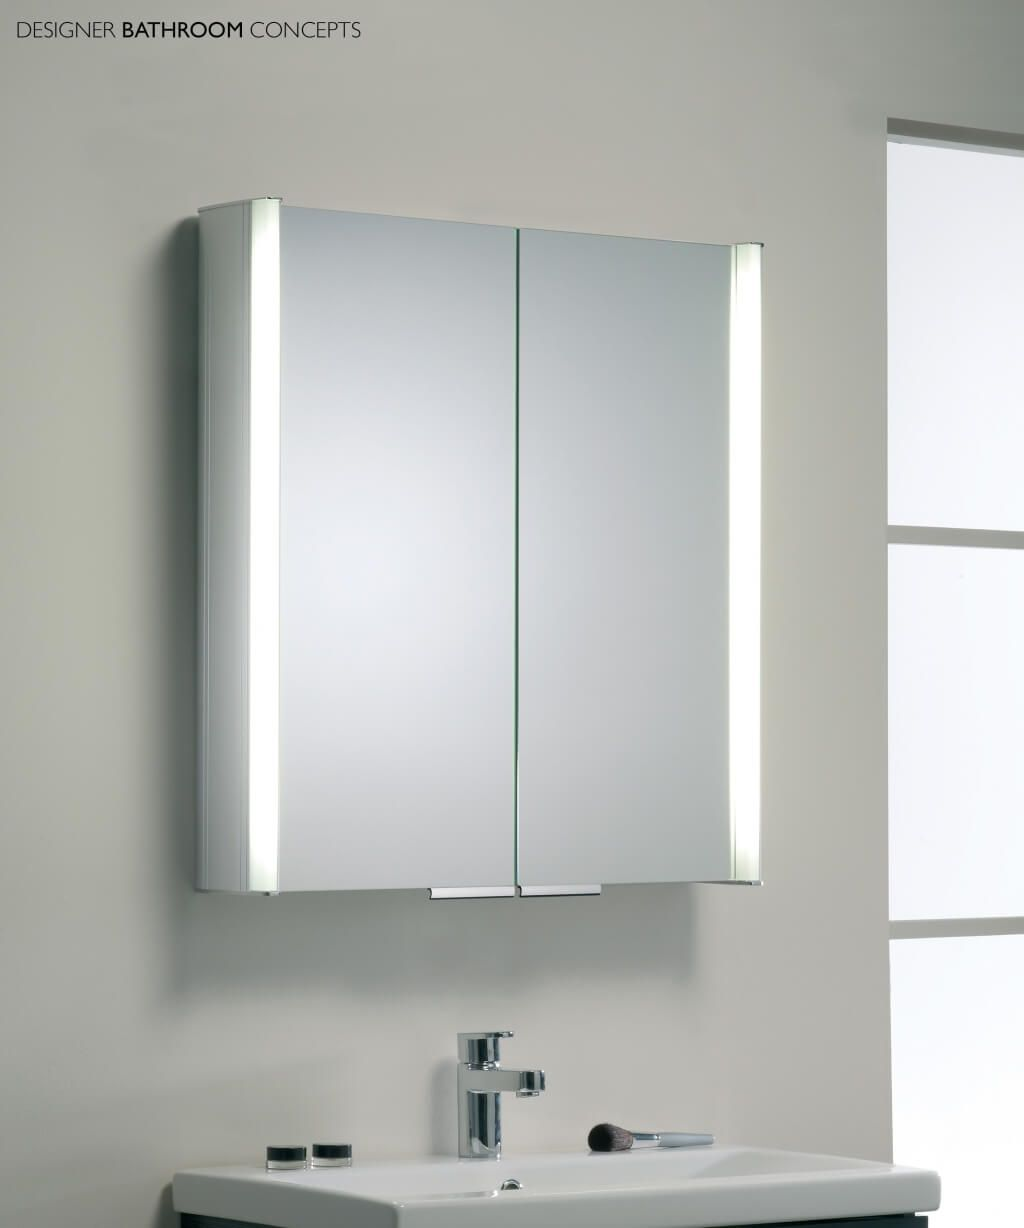 Spiegel Licht Bad Pin By Sonia Goddard On House Jewels Ii Bathroom Mirror